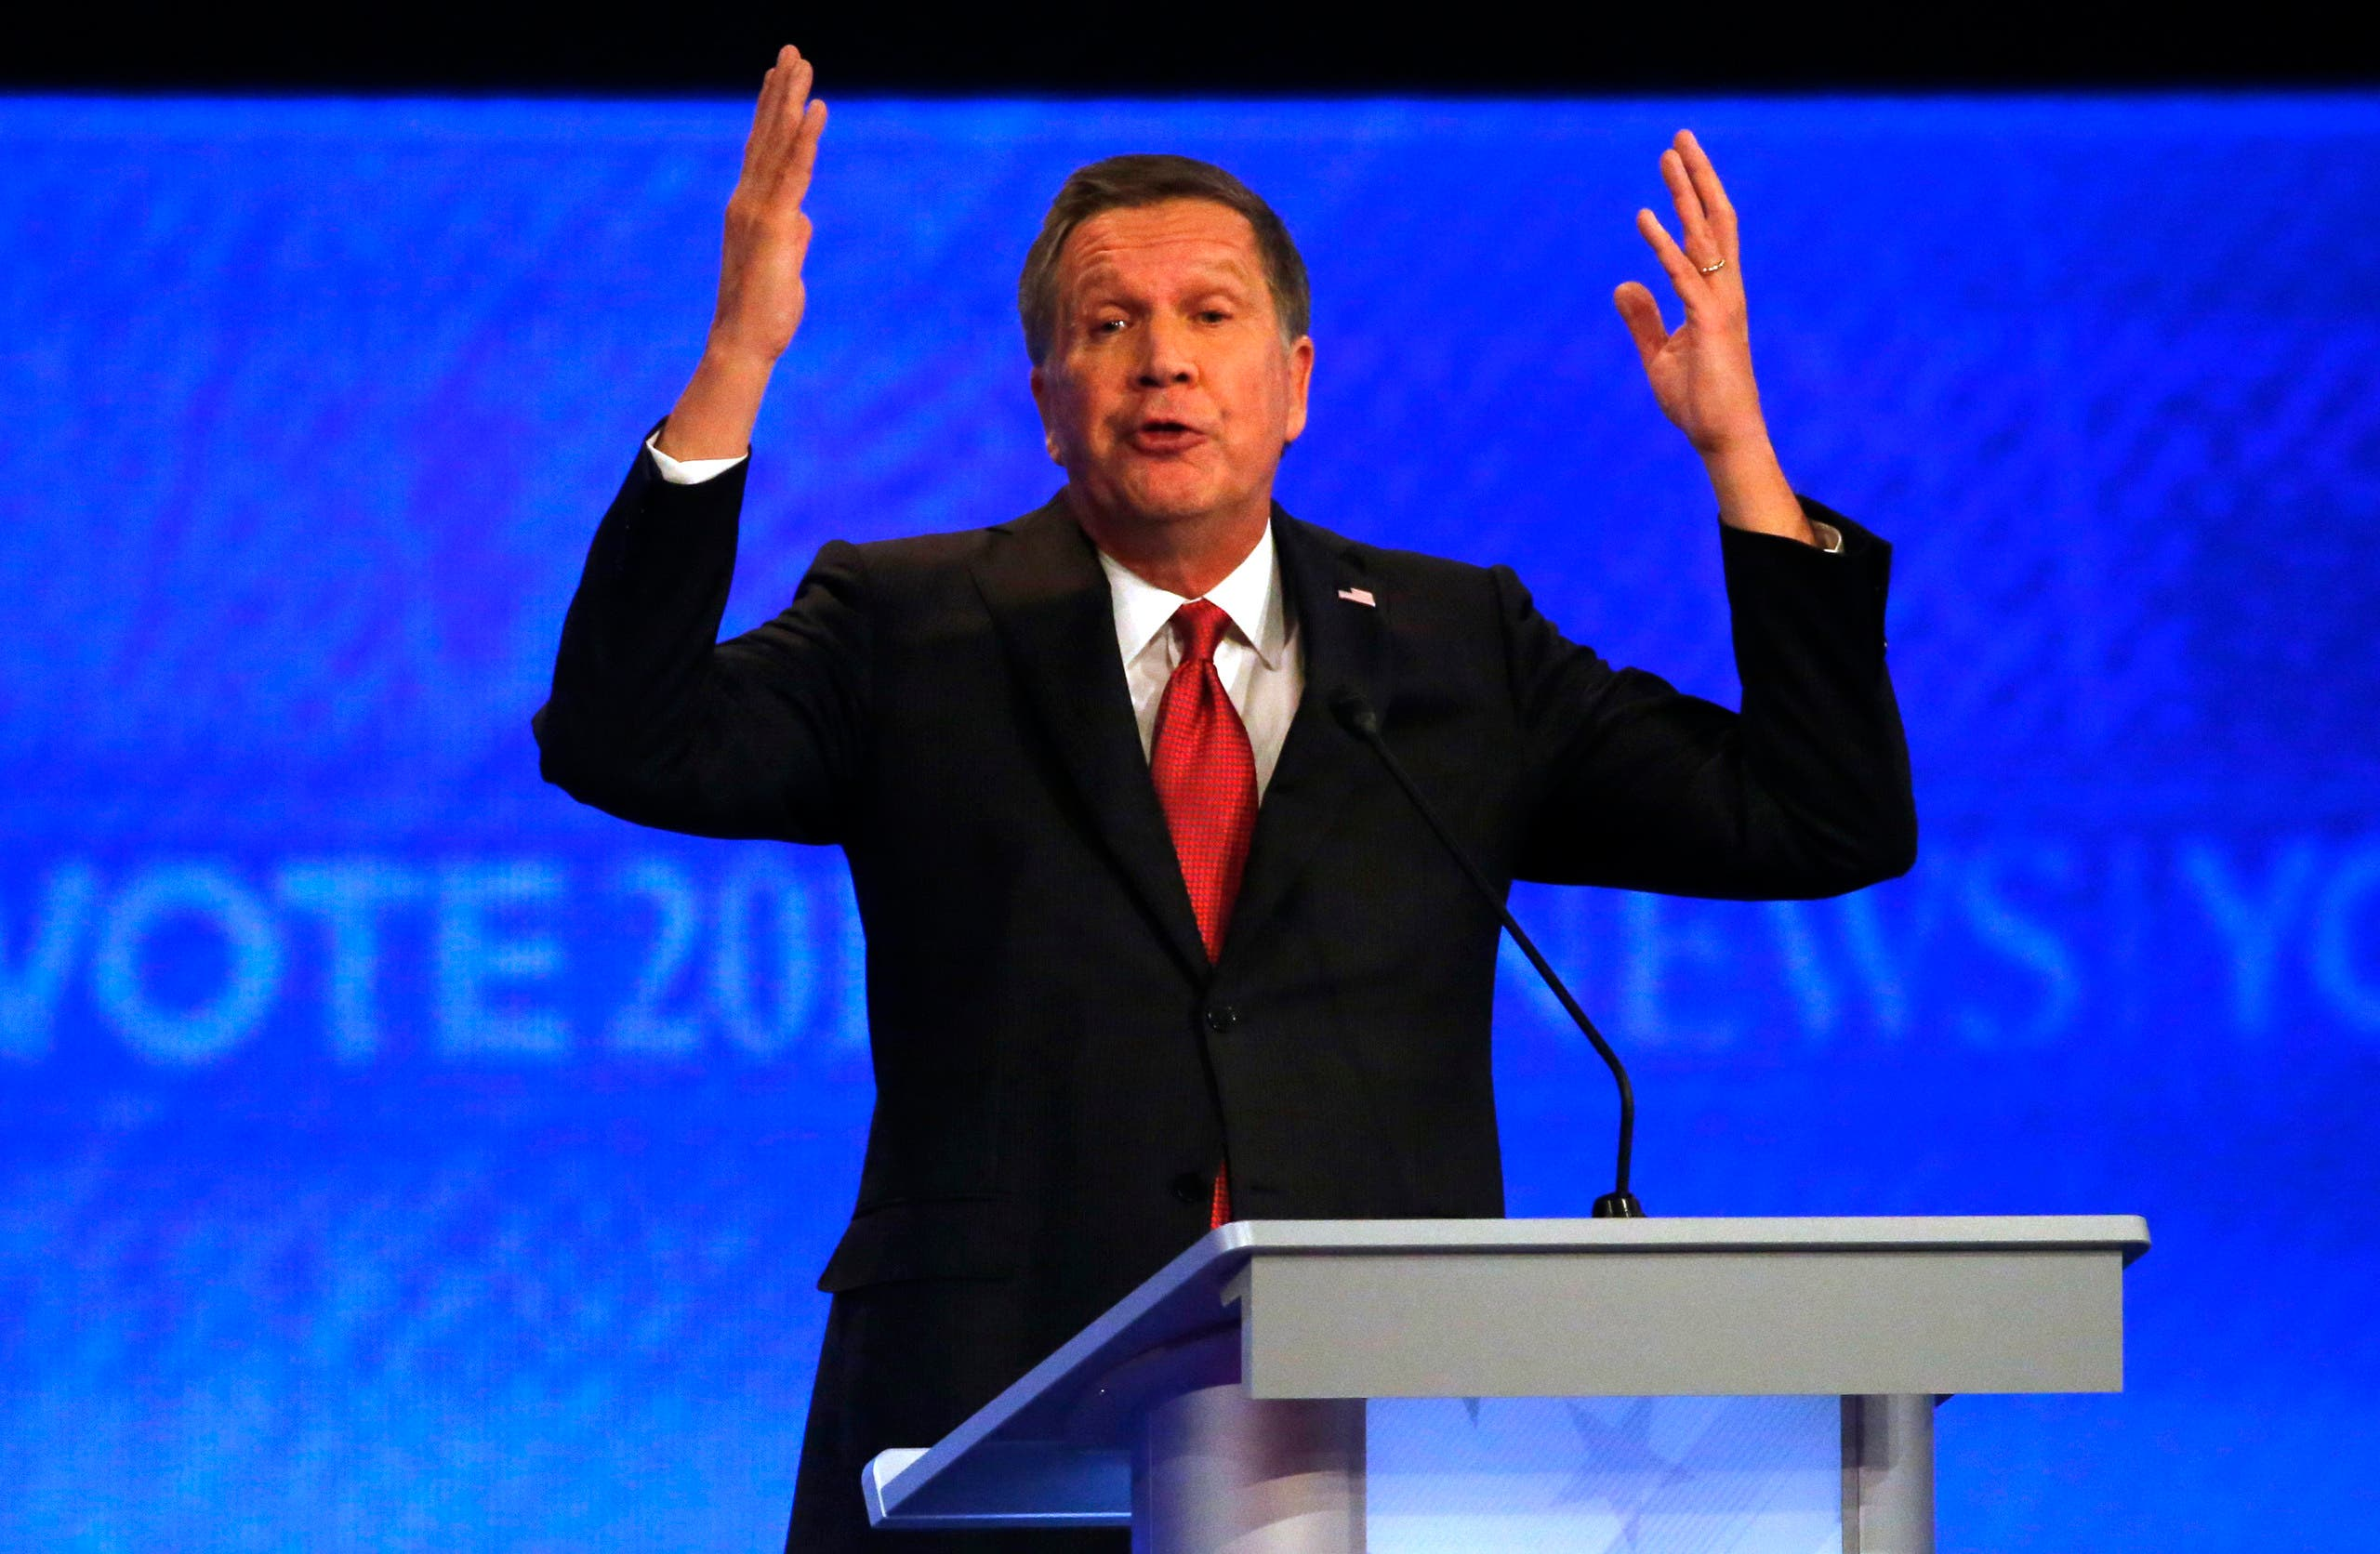 Republican U.S. presidential candidate Governor John Kasich speaks during the Republican U.S. presidential candidates debate sponsored by ABC News at Saint Anselm College in Manchester, New Hampshire February 6, 2016